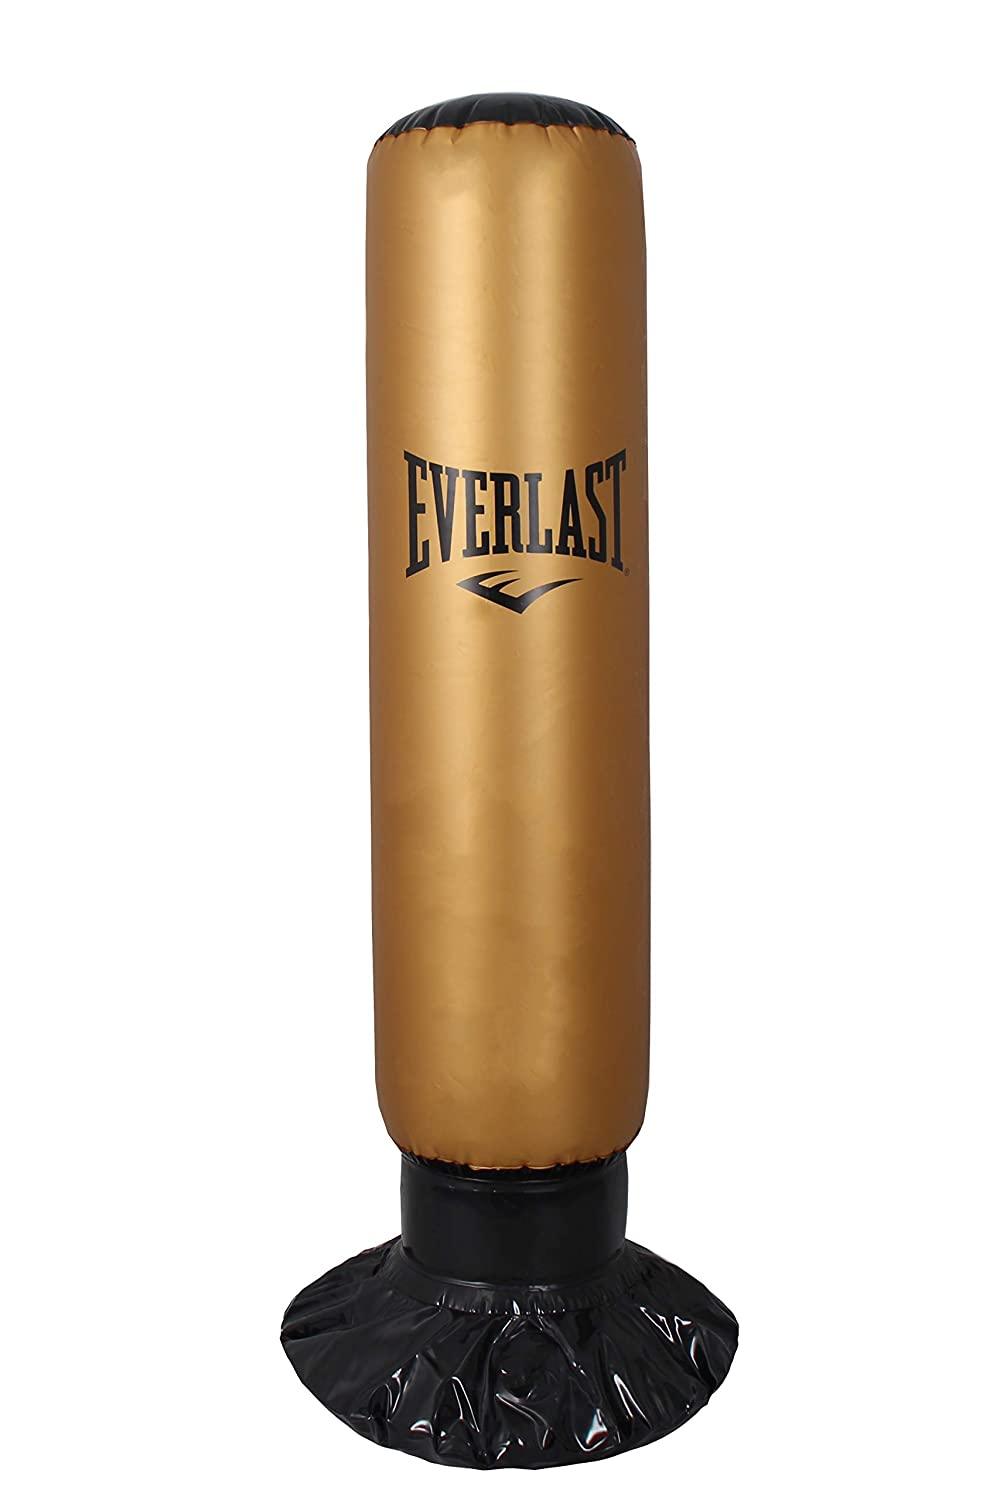 Everlast ev2628 - Saco de Boxeo Hinchable (Talla L), Color ...